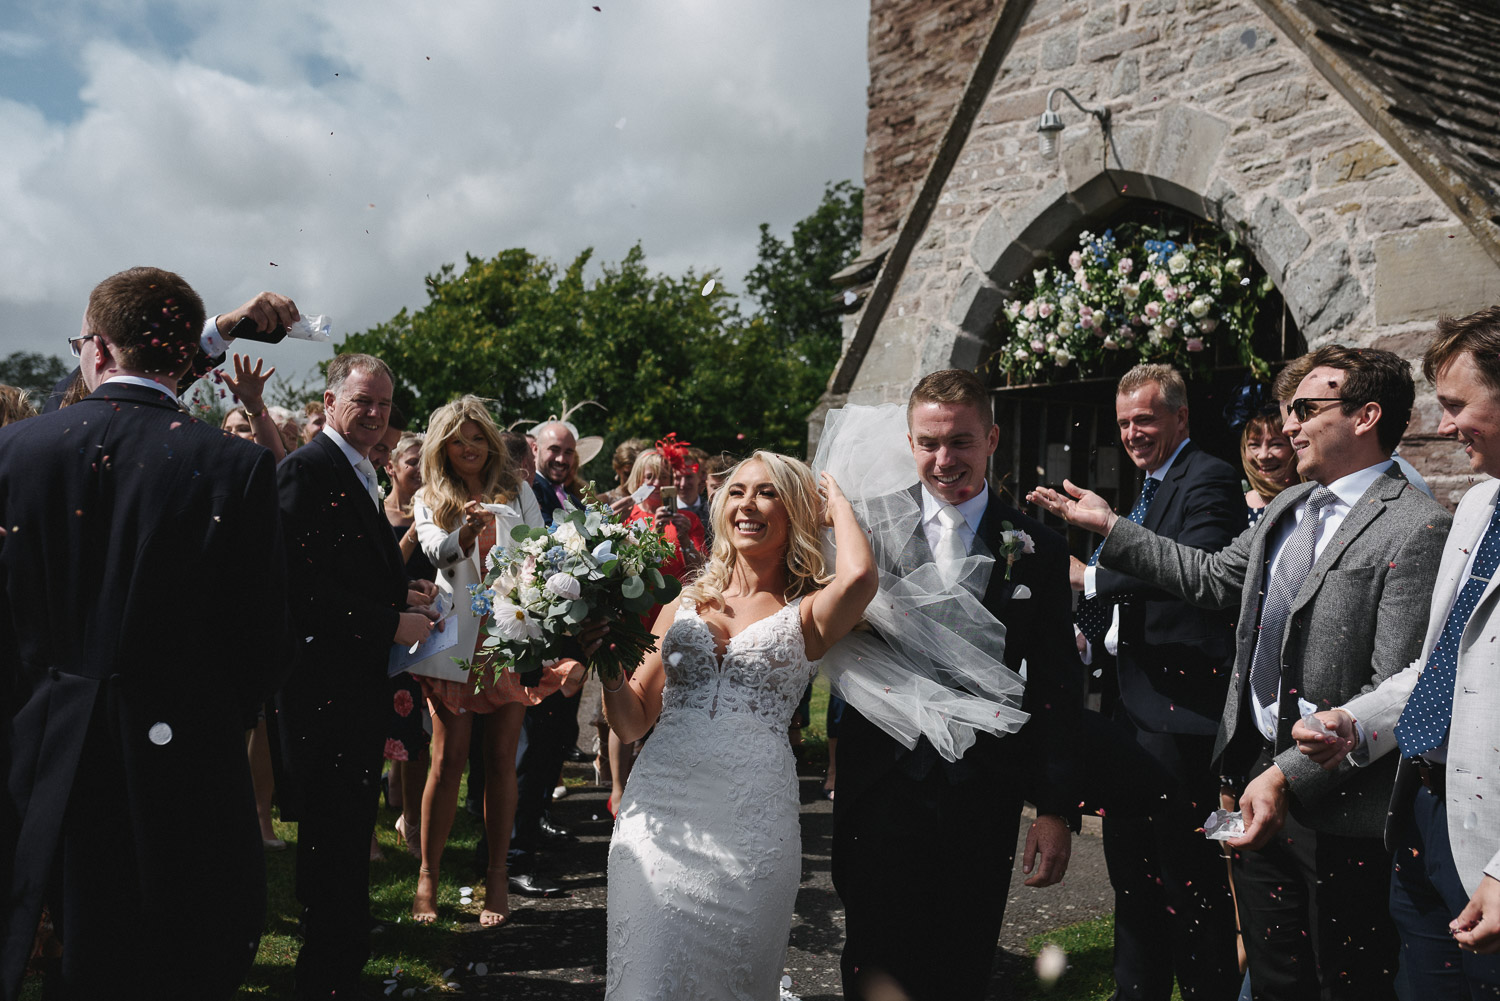 Vicky and Anthony - St. Marys Almeley and Lemore Manor, Herefordshire.